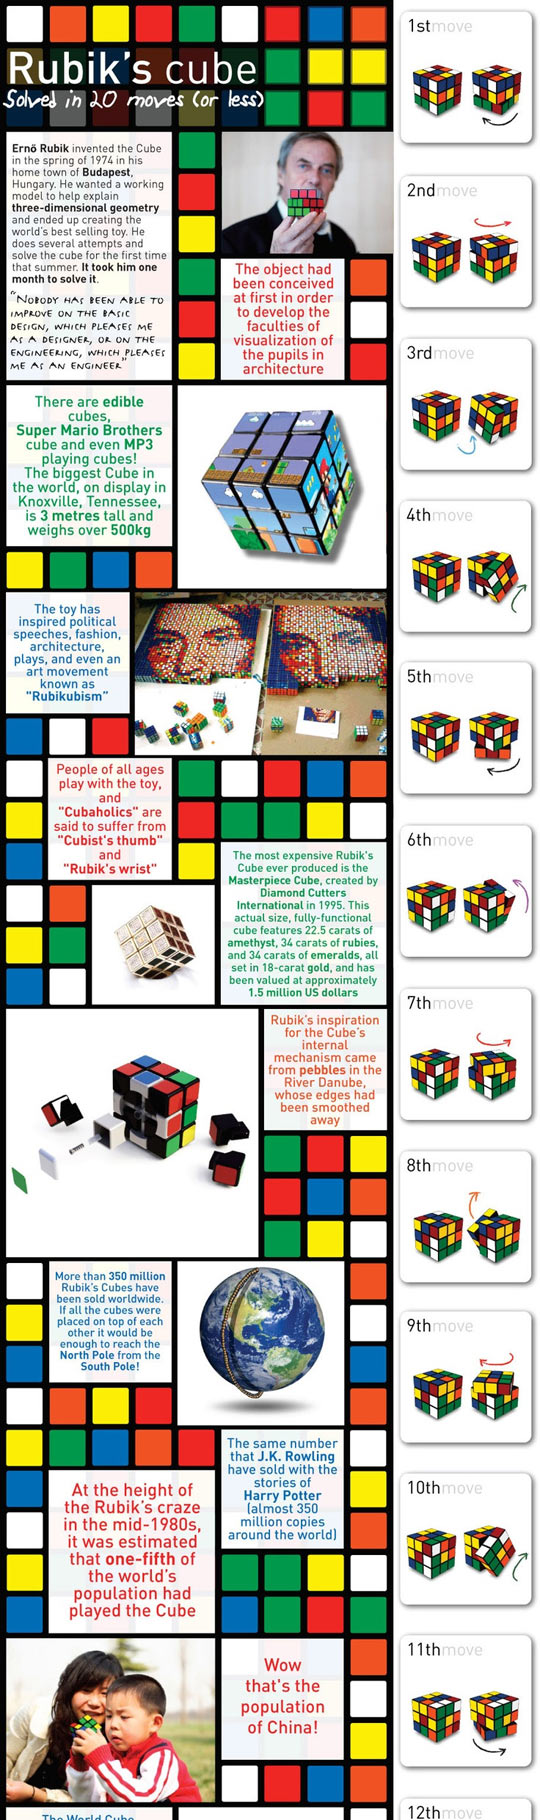 All you need to know about Rubik